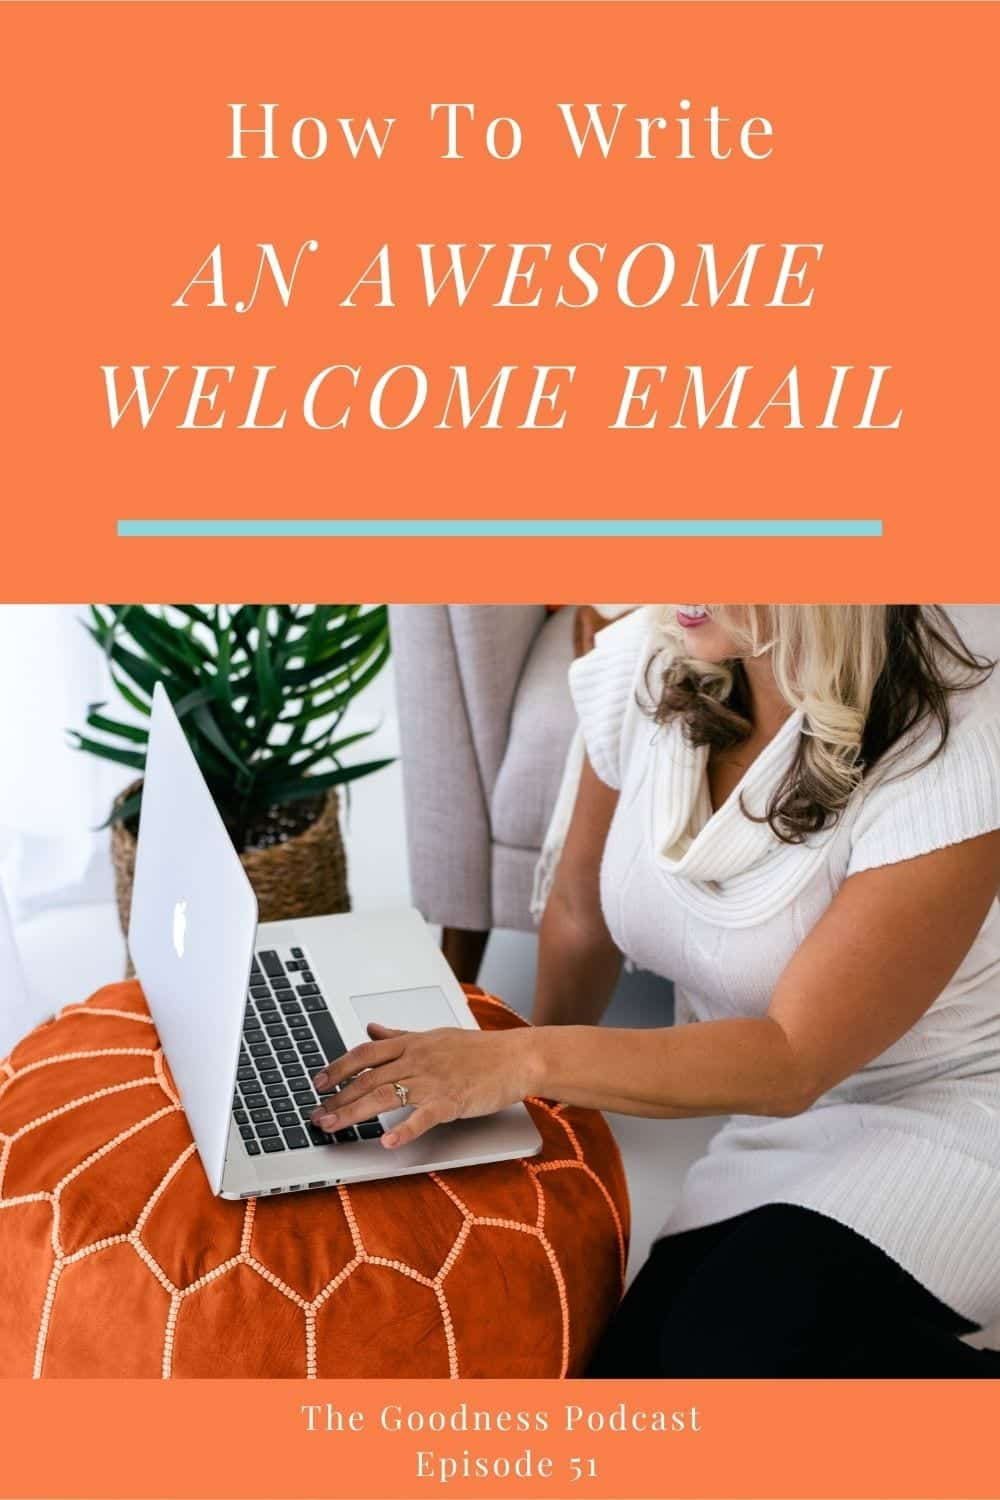 051_How to send a killer welcome email and why it matters to people